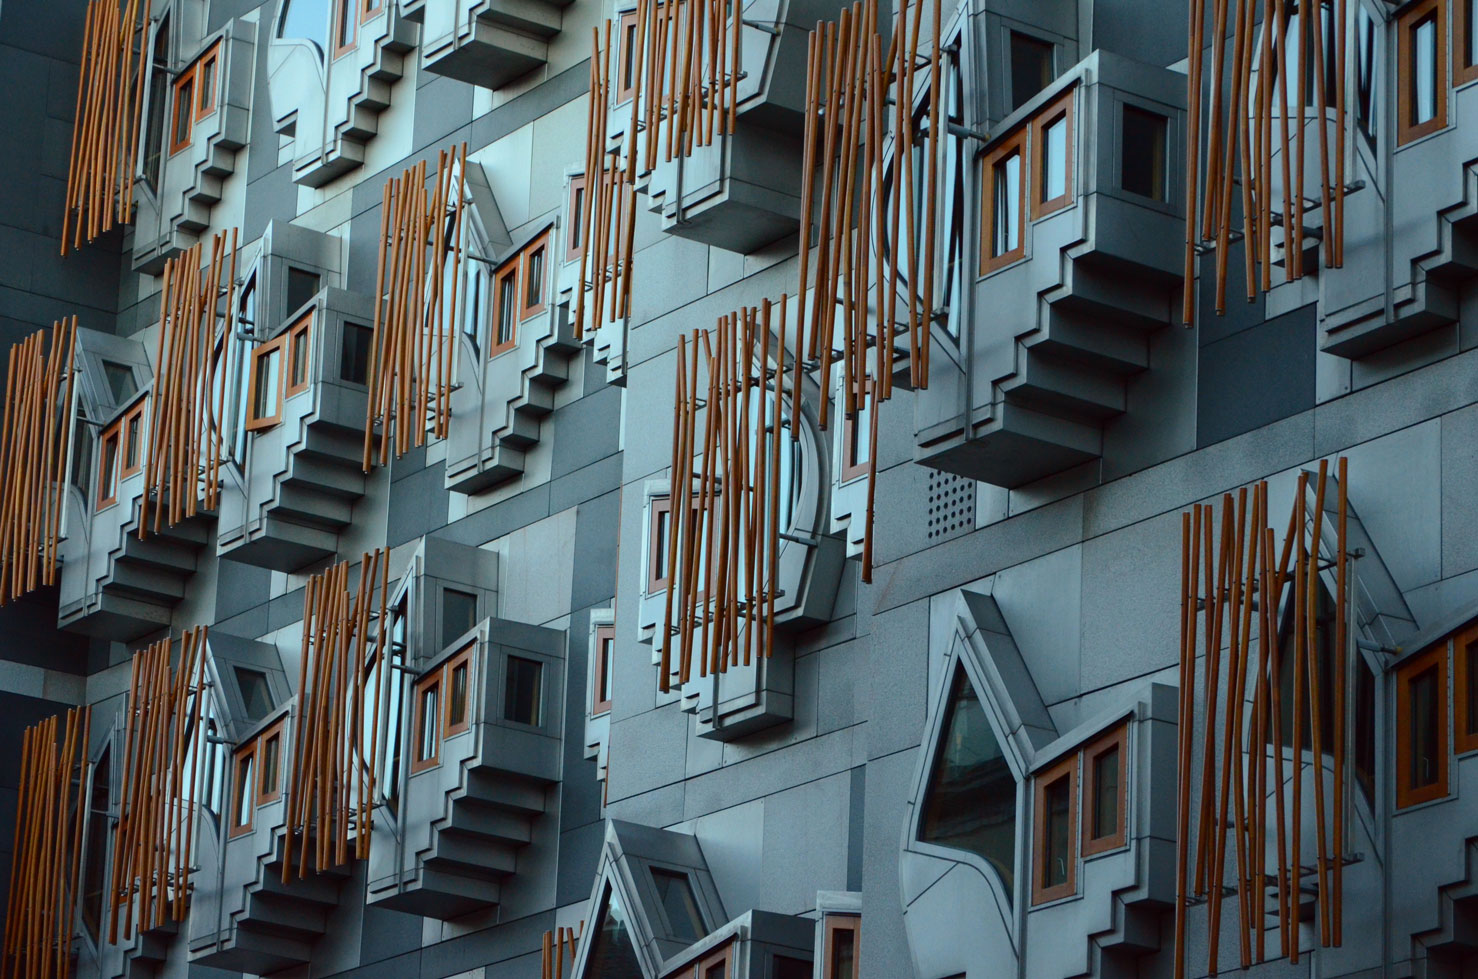 GERMANY ARCHITECTURES INVENTED NEW DESIGN